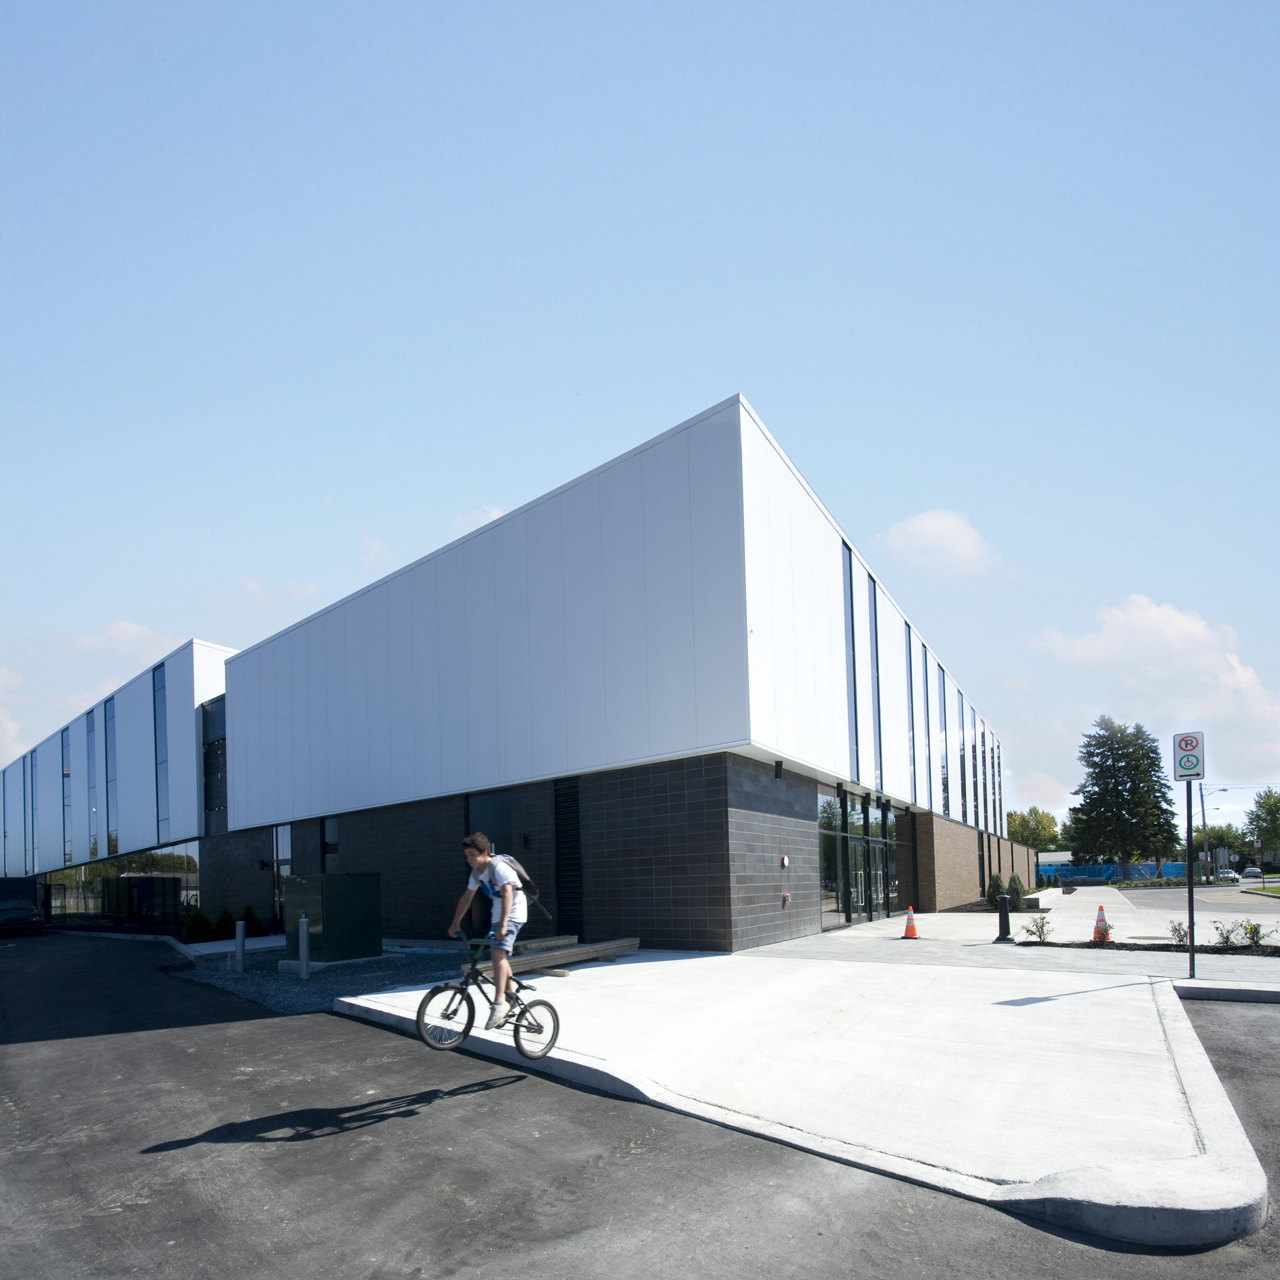 St-Hyacinthe Aquatic Centre / ACDF*, © James Britain, ACDF*